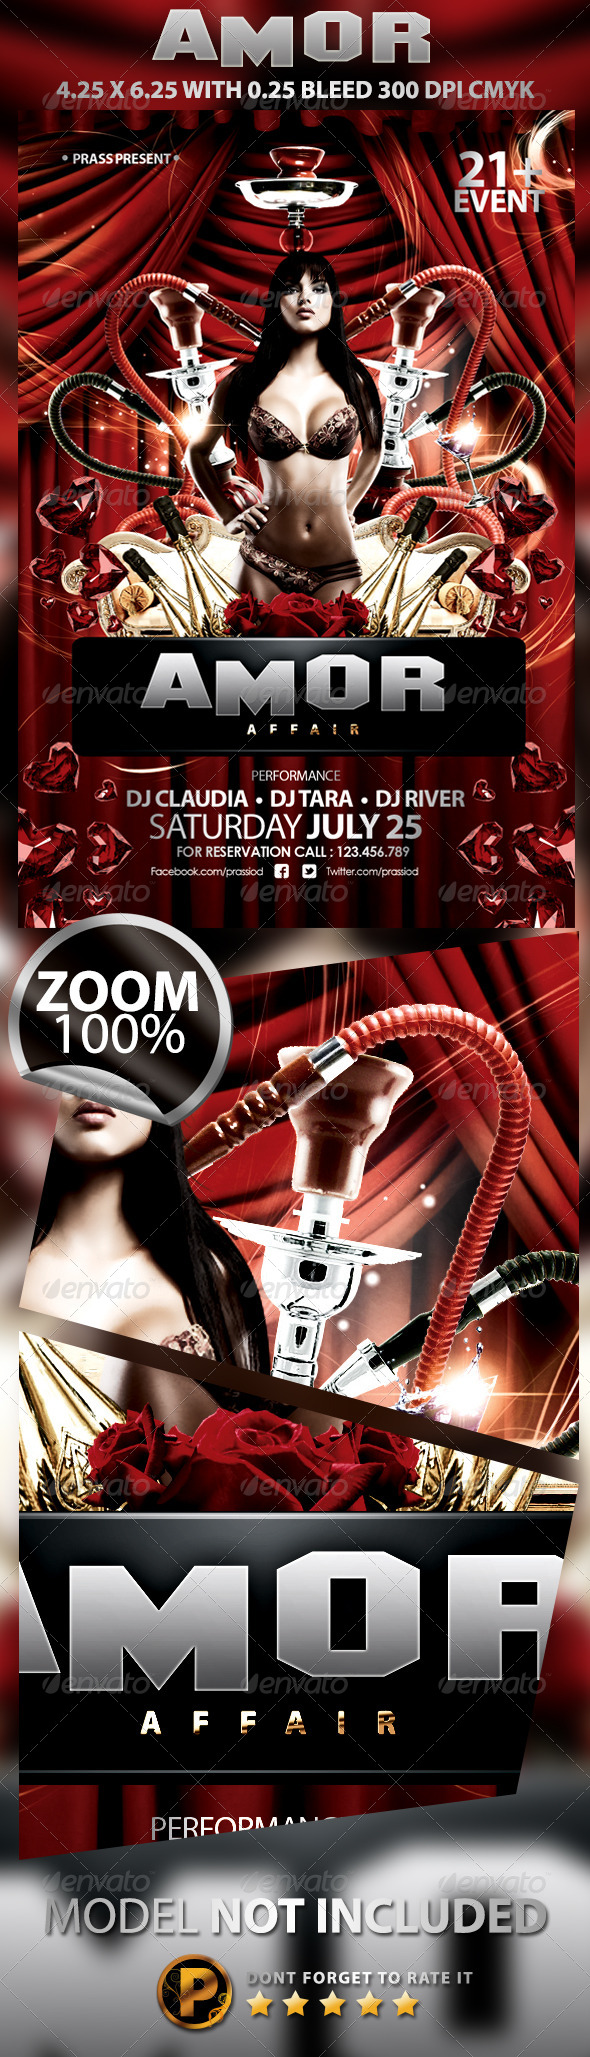 Amor Affair Flyer Template - Clubs & Parties Events